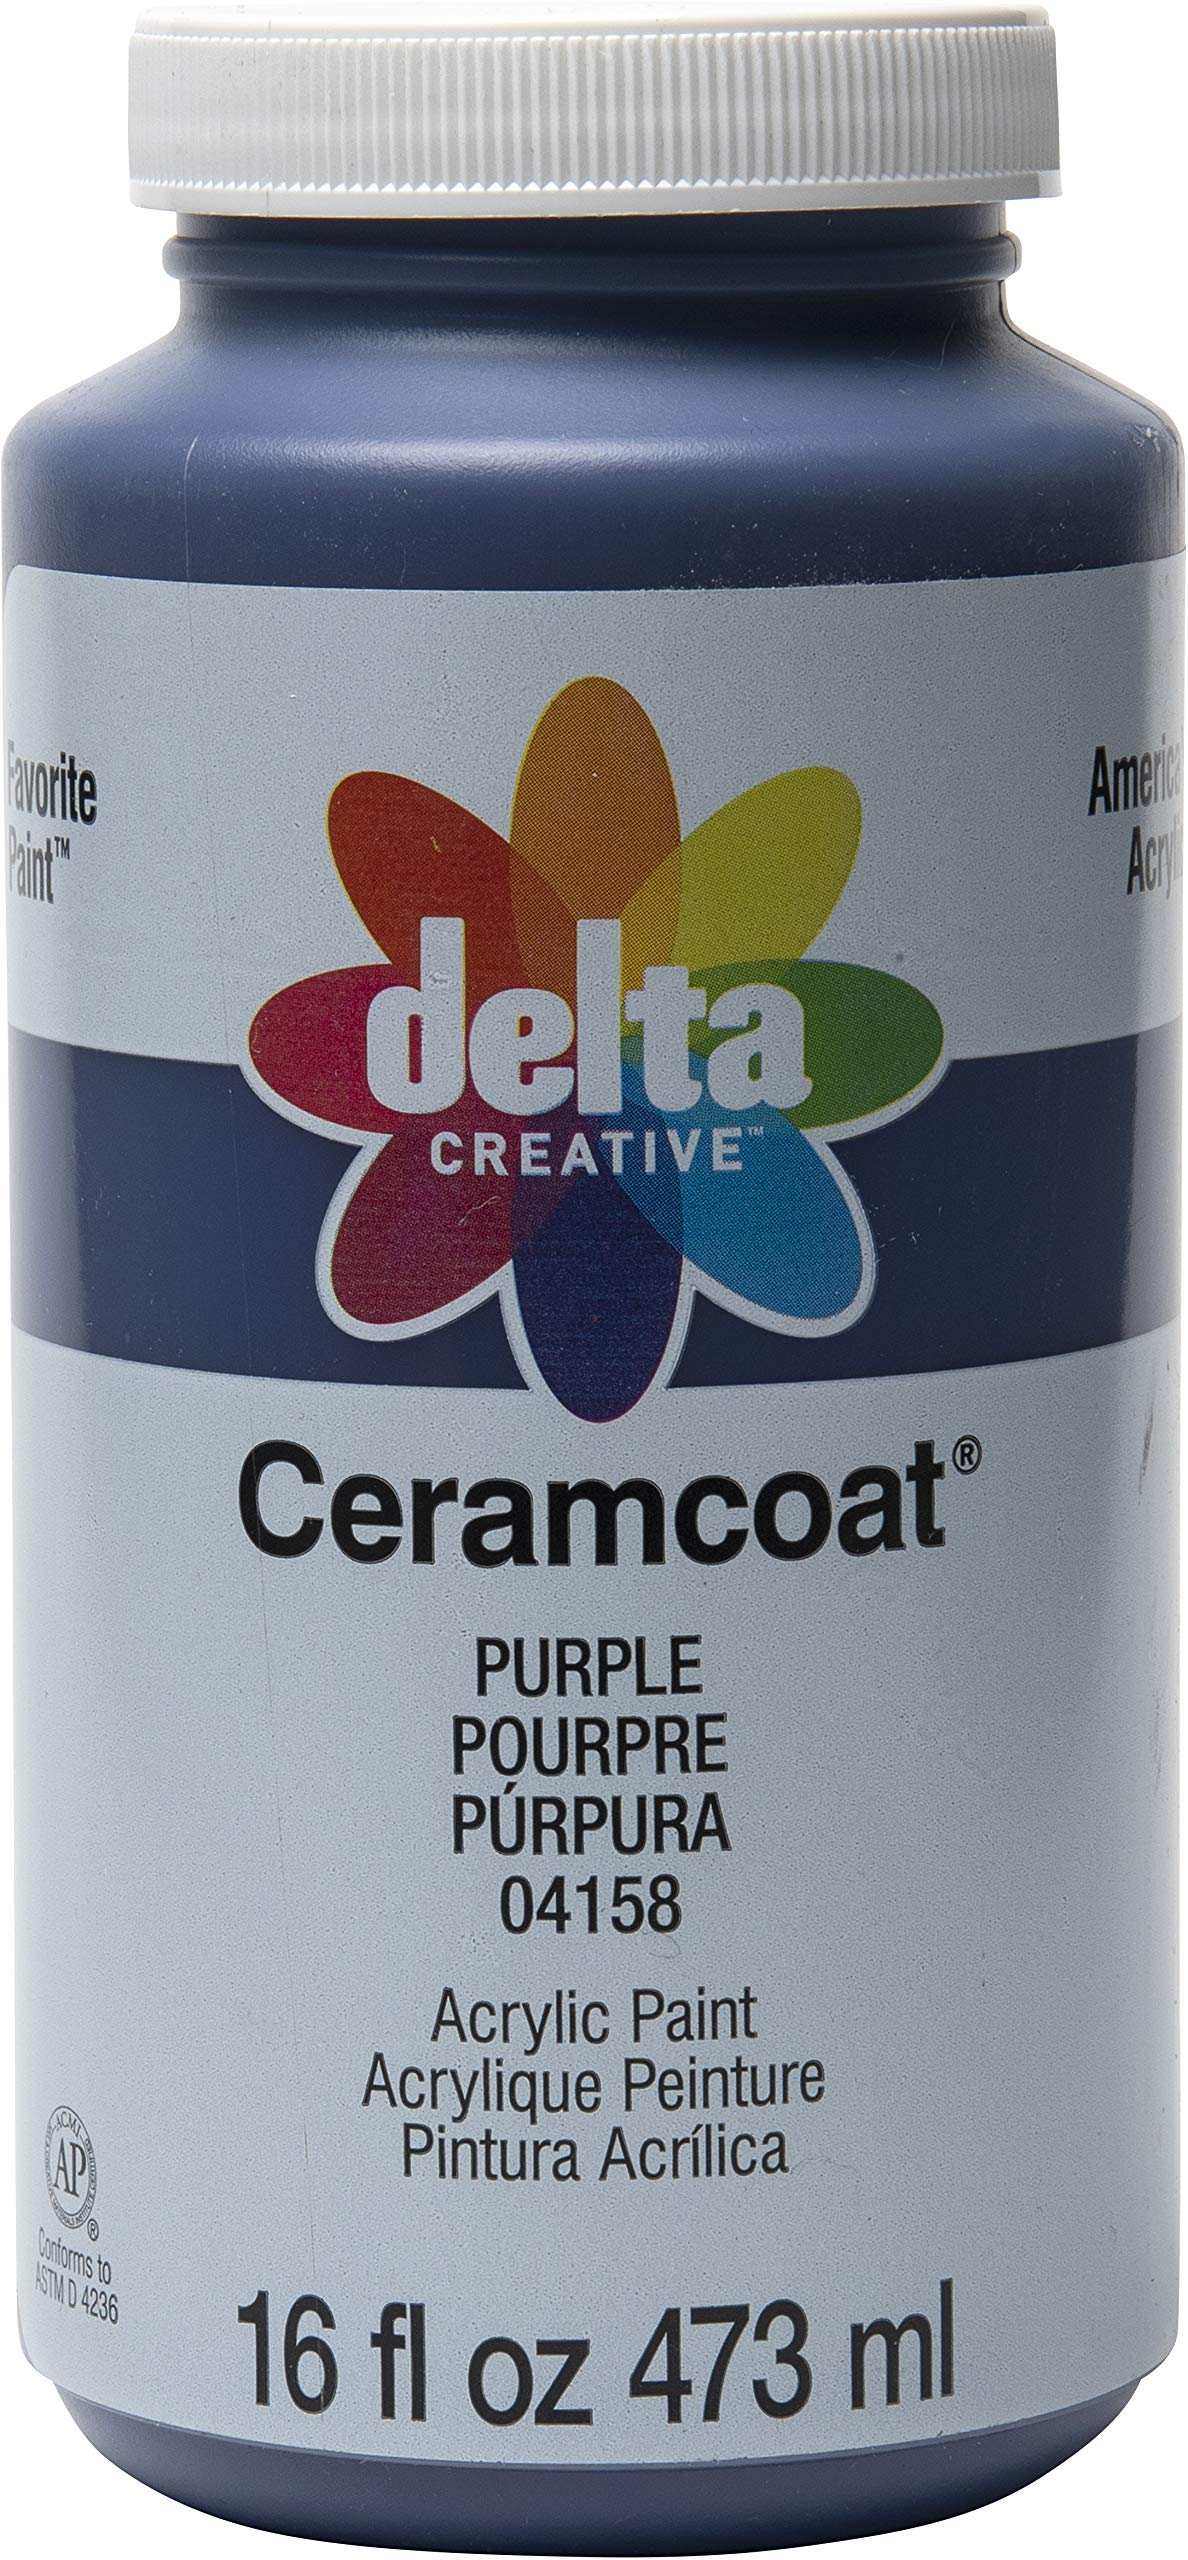 Delta Creative Ceramcoat Acrylic Paint in Assorted Colors, 16 oz, Purple